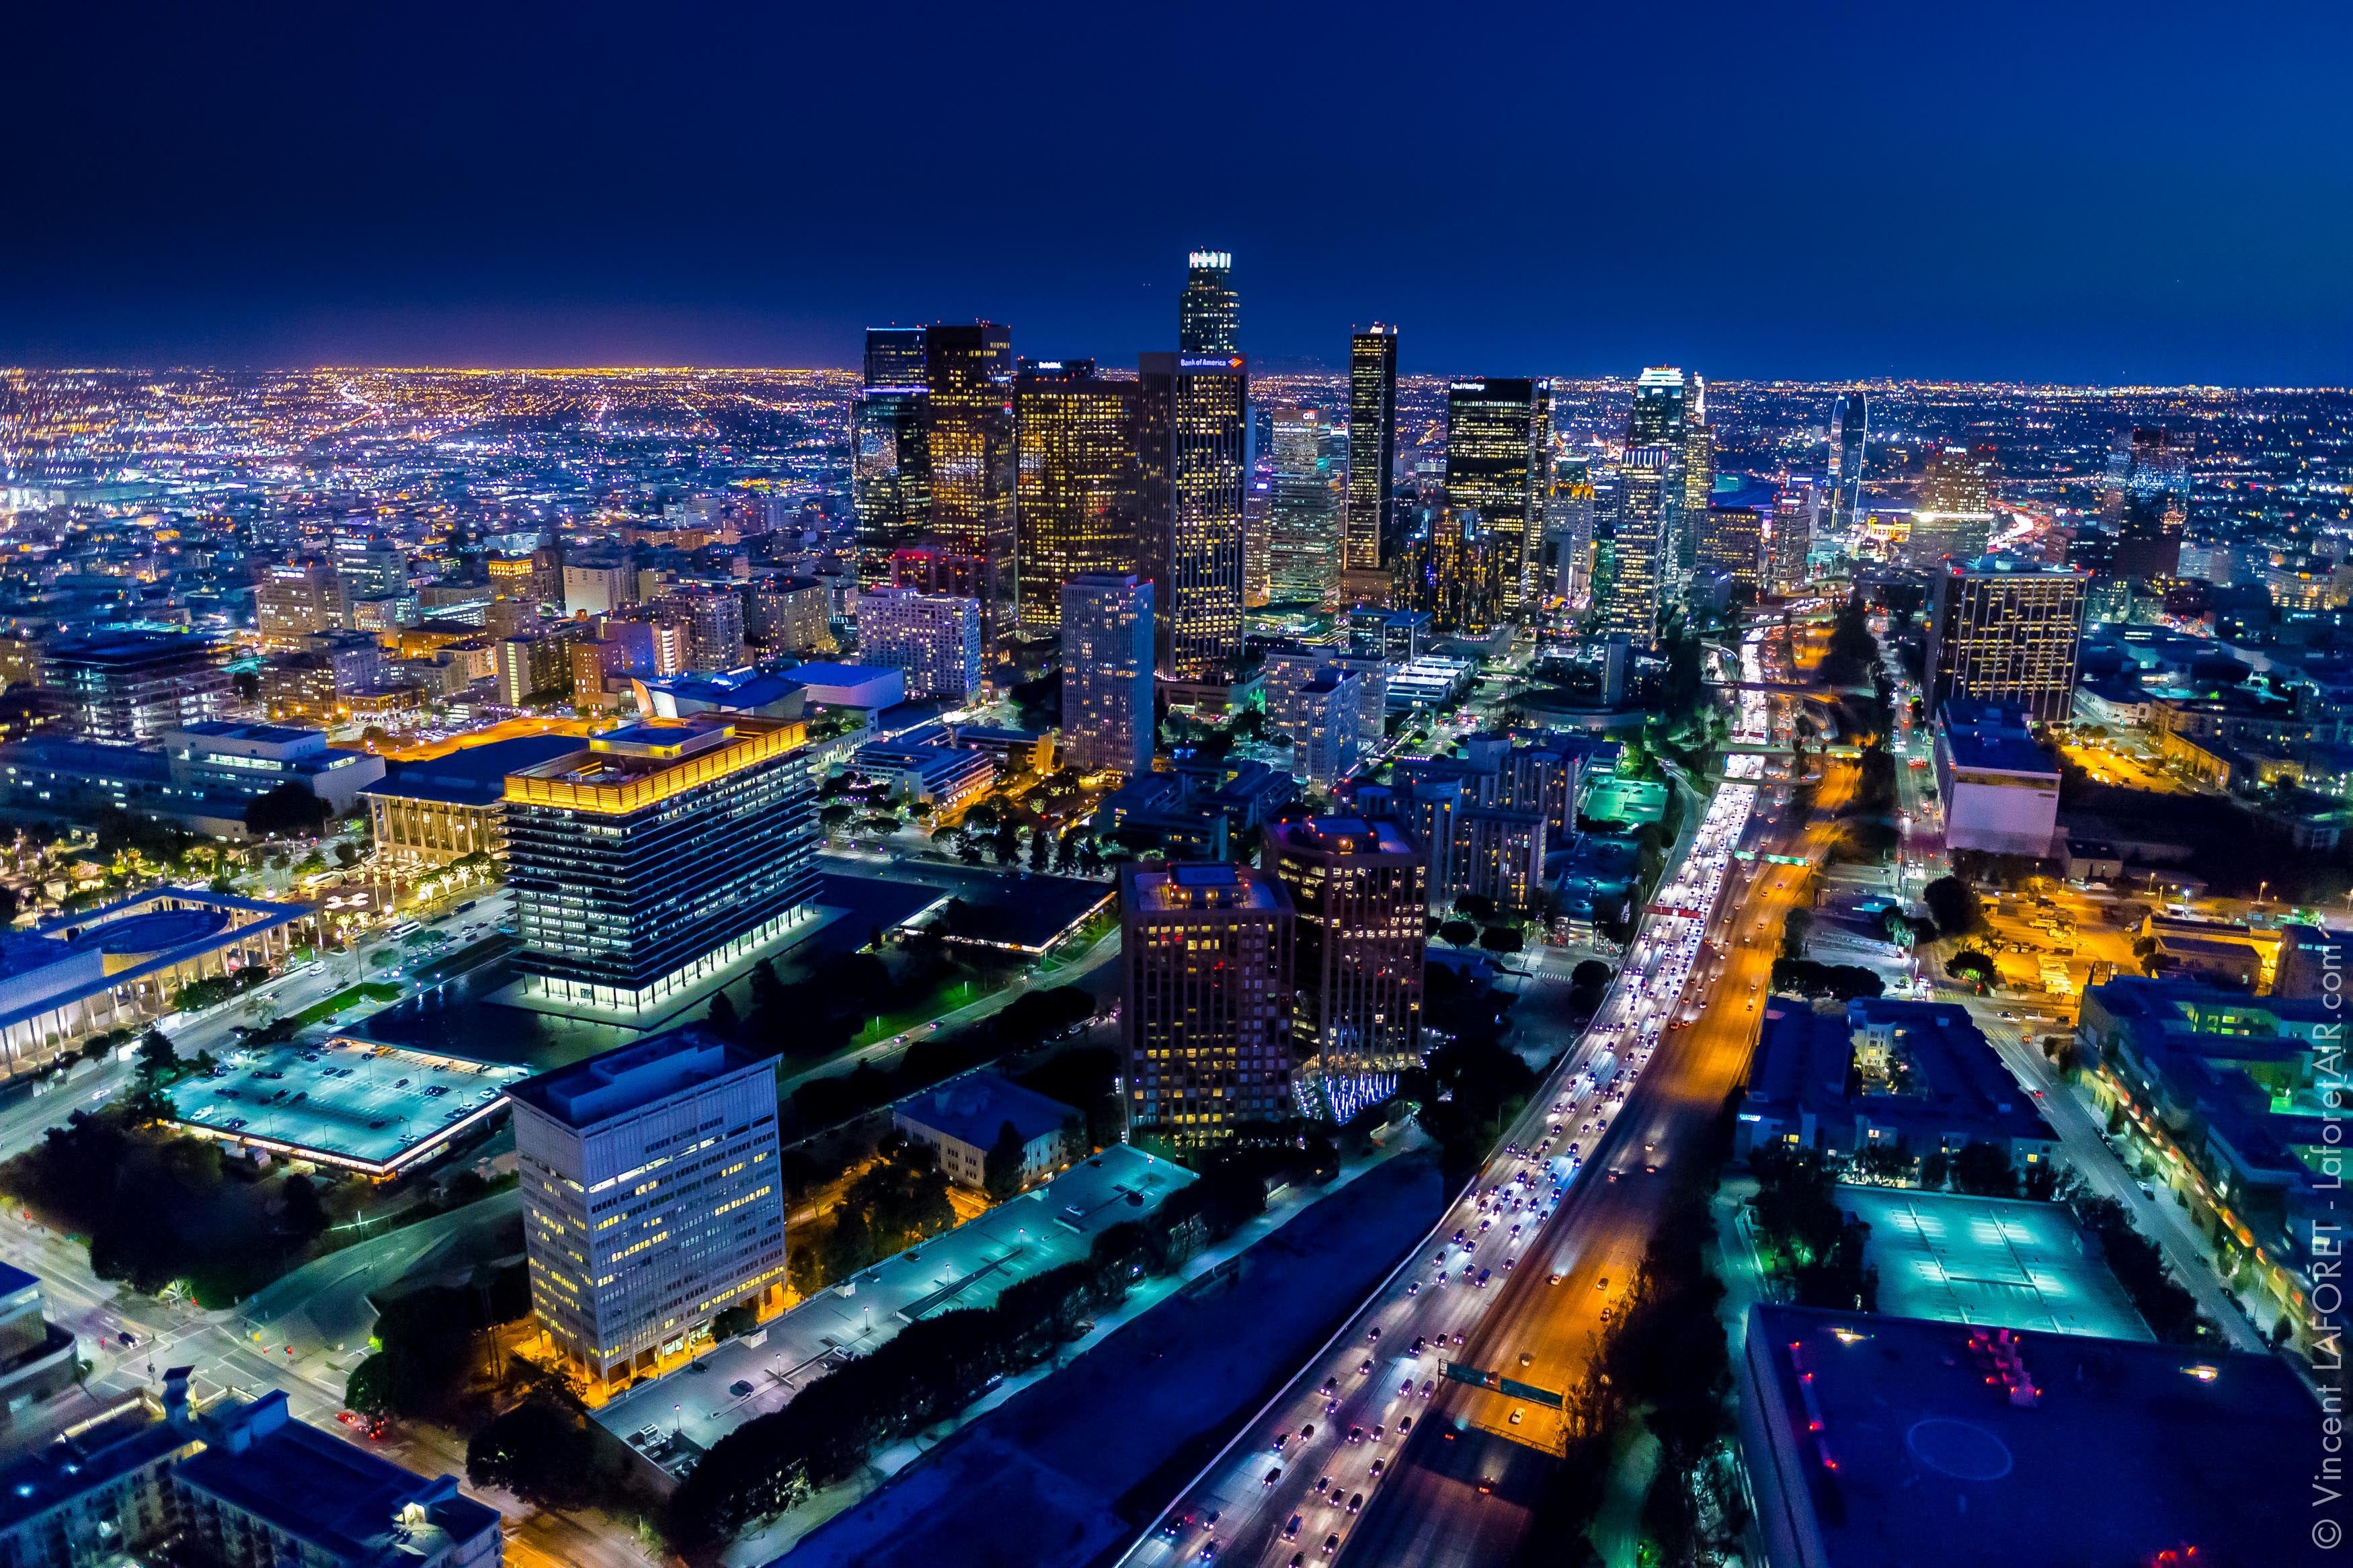 Spectacular Aerial Photos Of Los Angeles Shows It Like You've Never Seen It